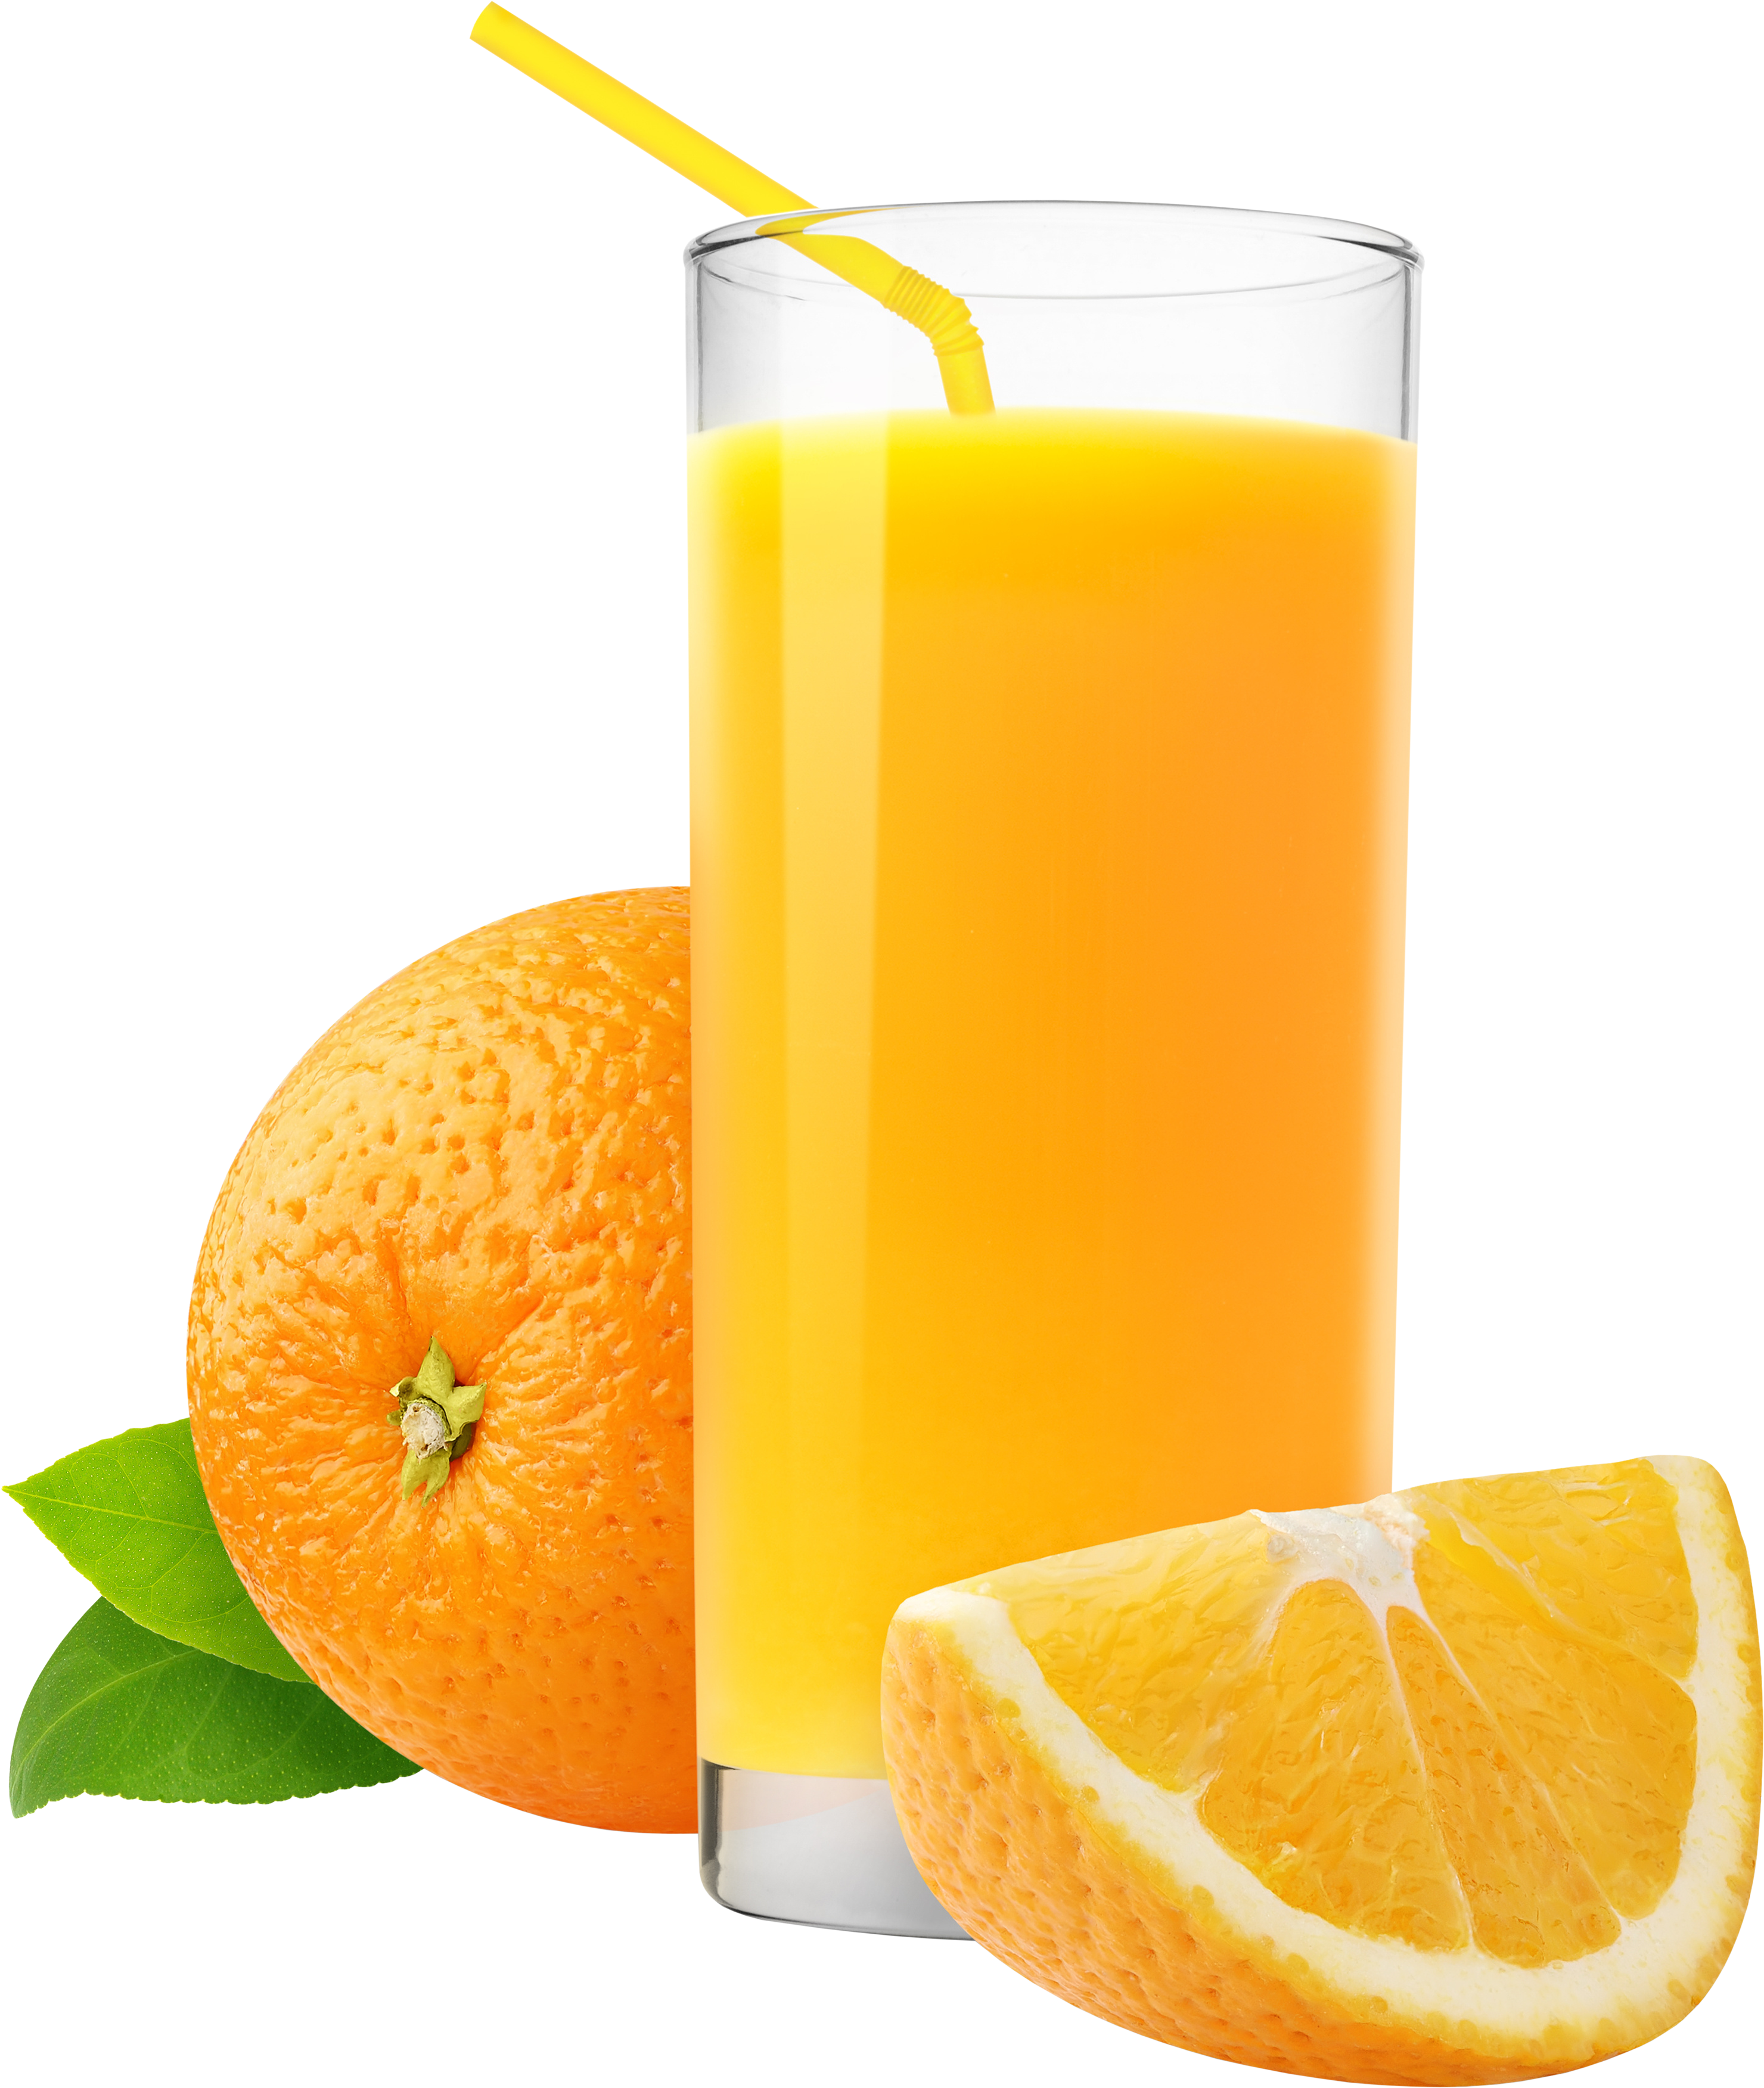 orange juice clipart clipart suggest orange juice clipart orange juice clipart black and white